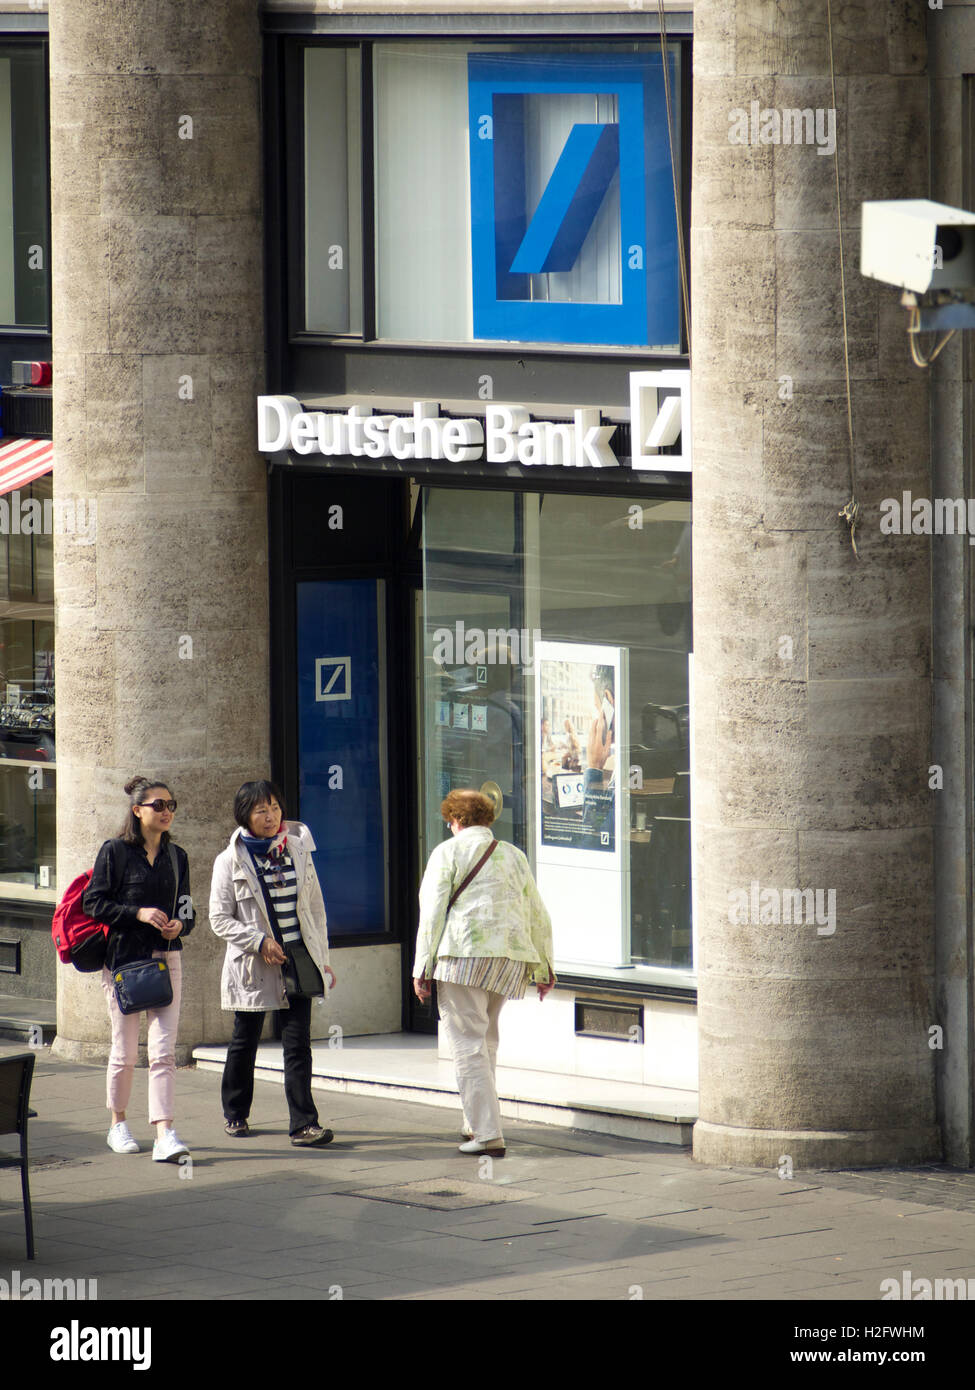 Deutsche bank office in Cologne, NRW, Germany, with people passing - Stock Image